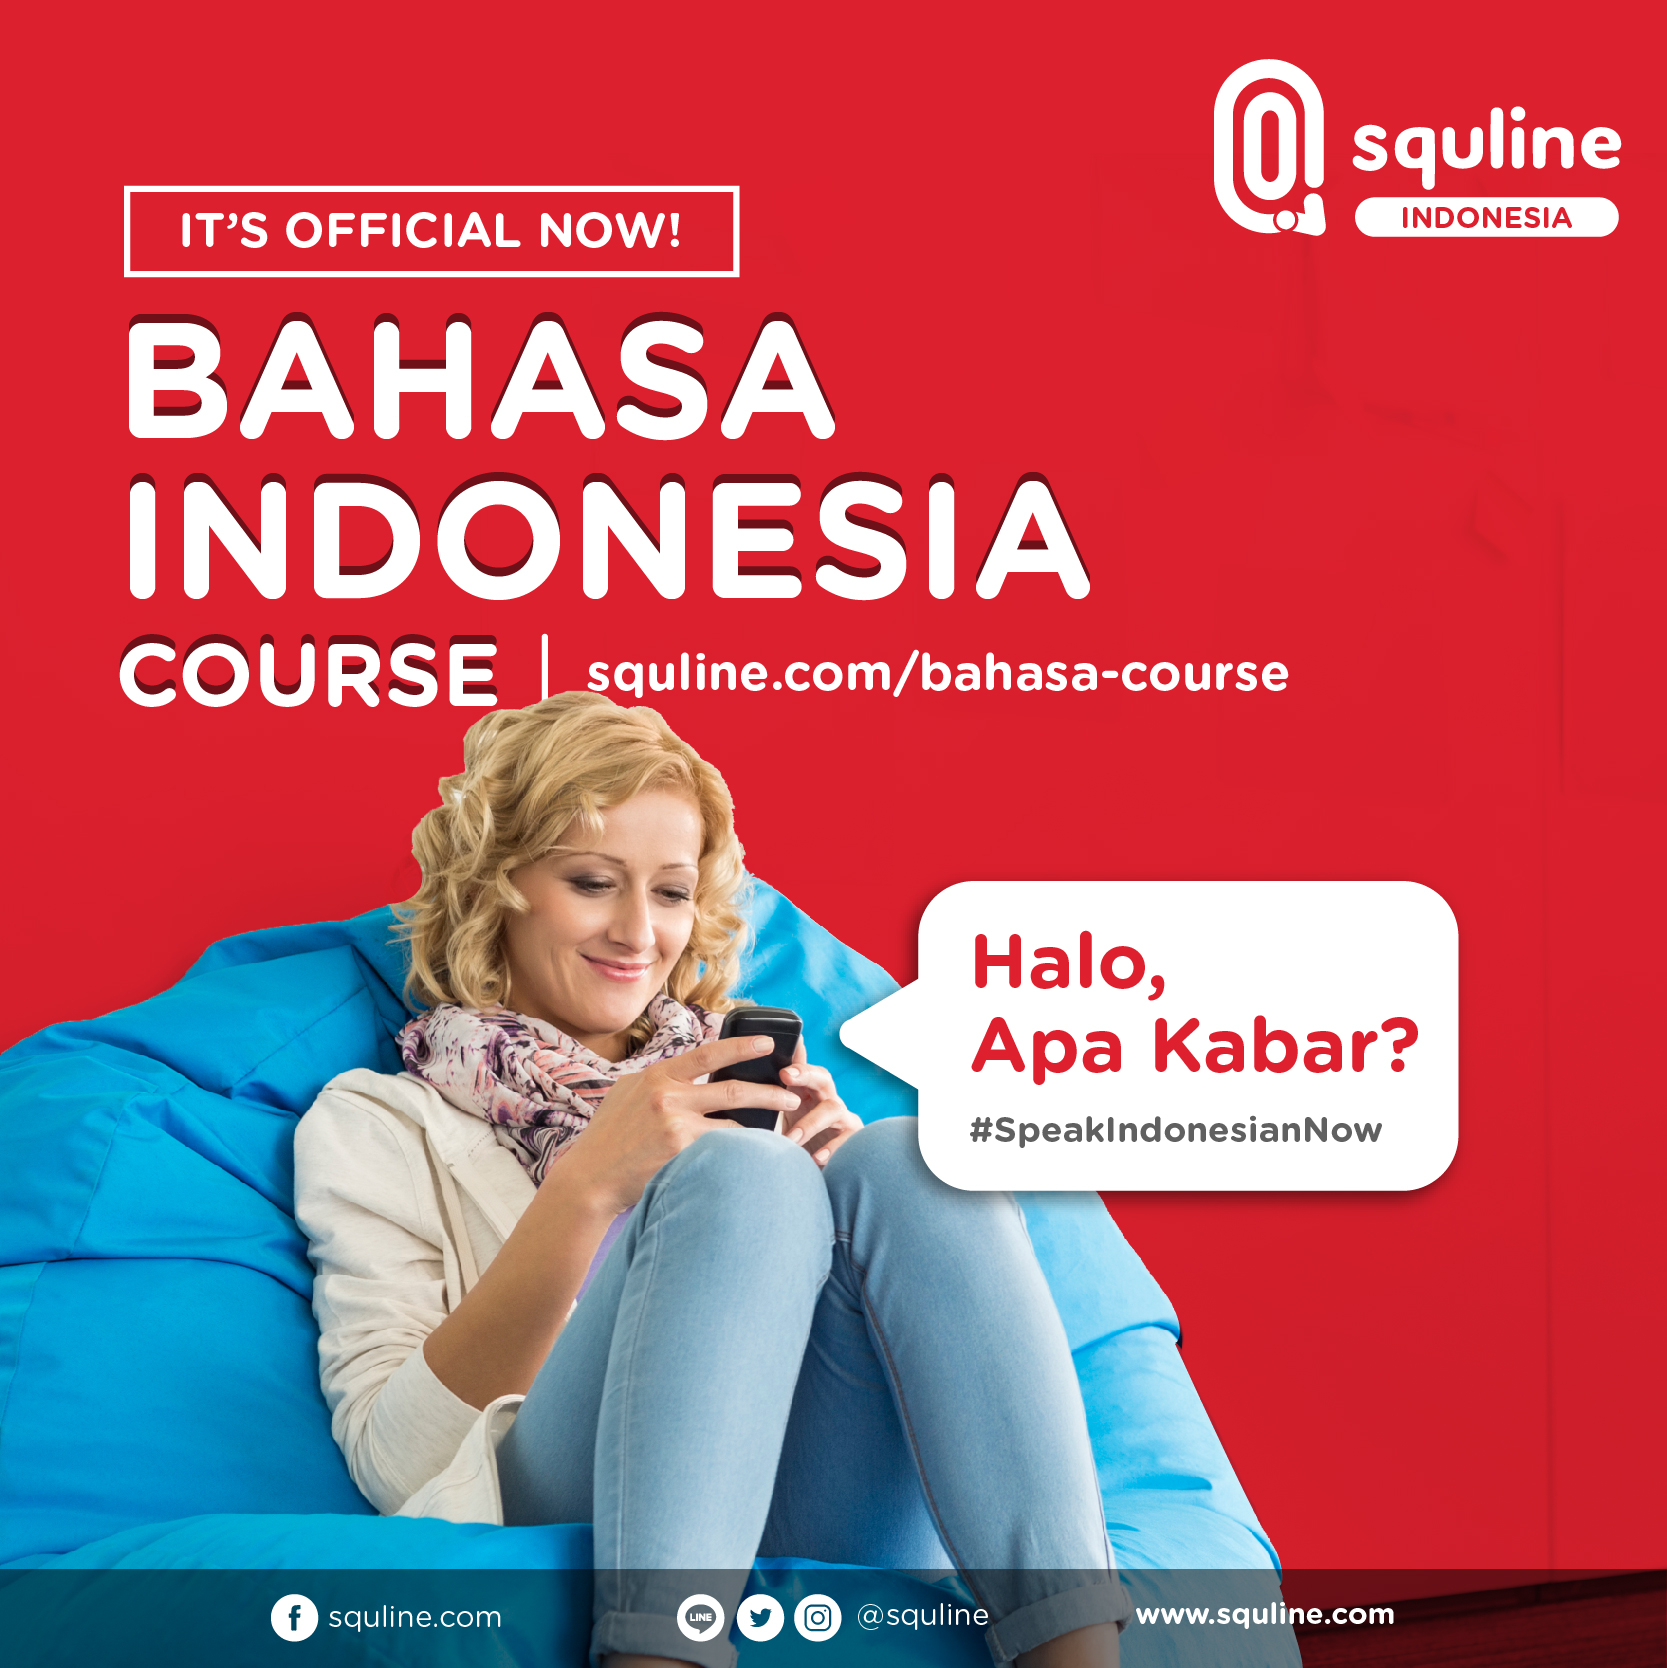 Squline Bahasa Indonesia Soft Launch 2 Mei 2018